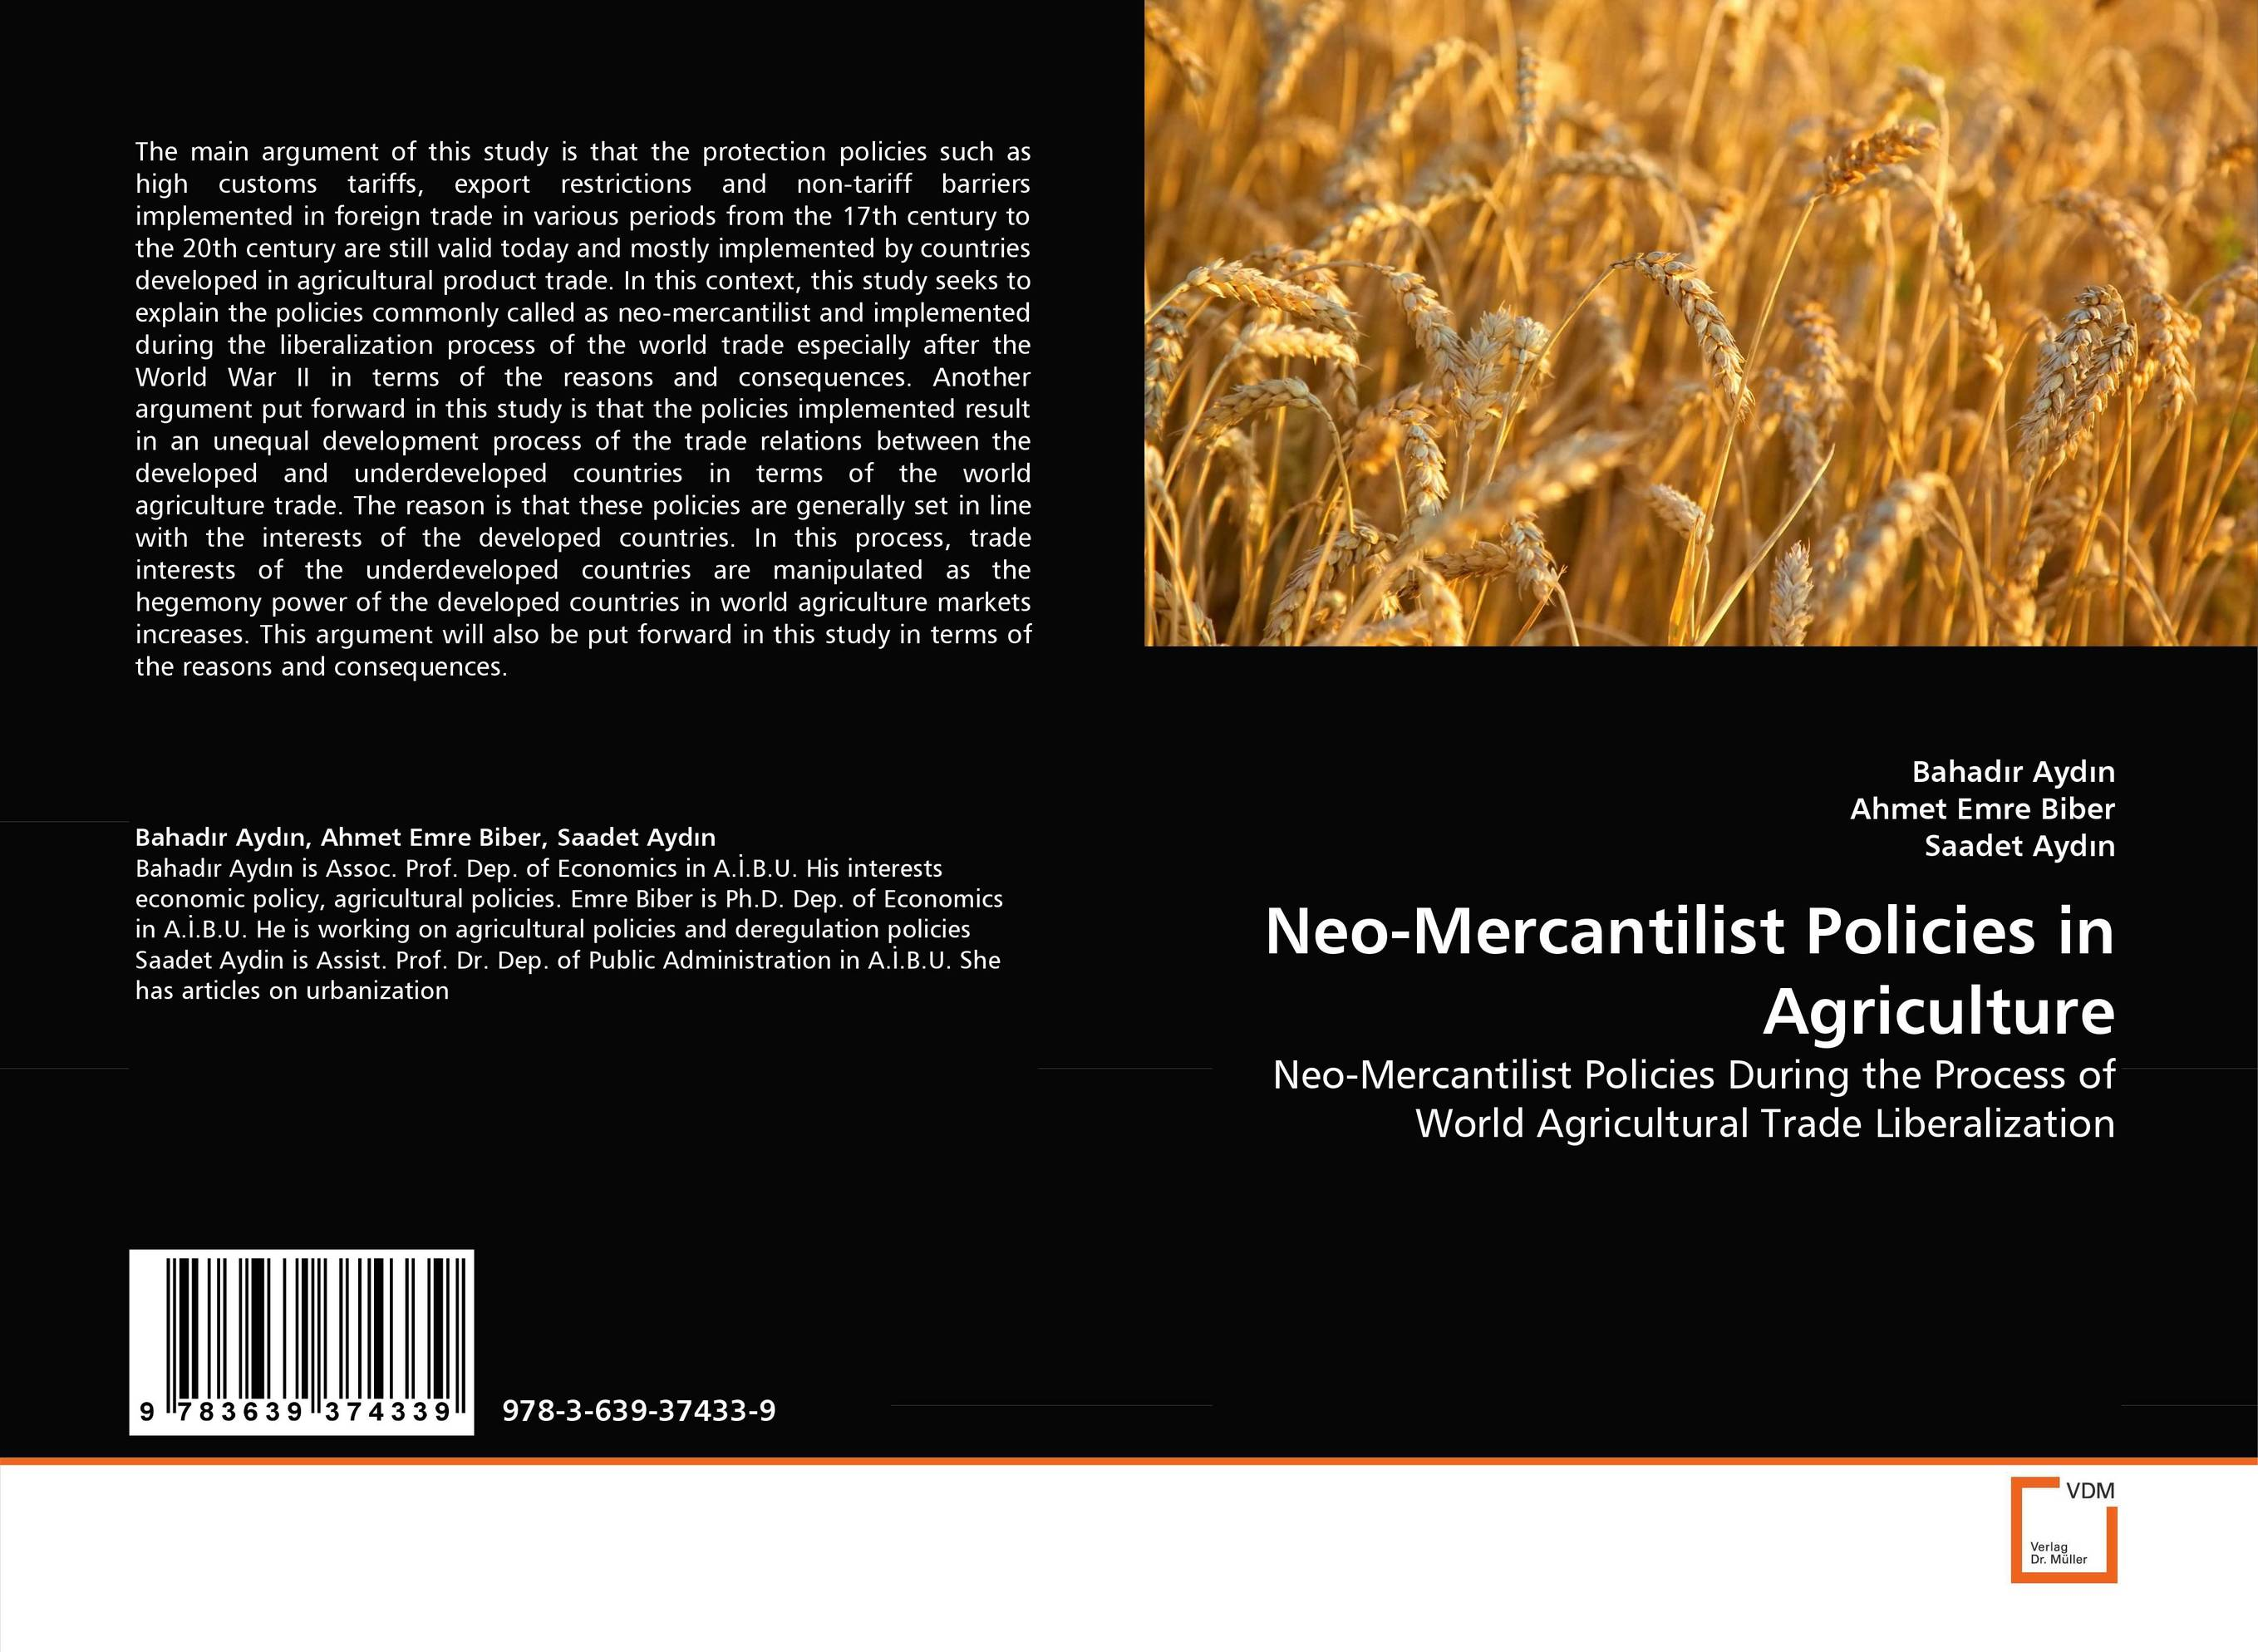 Neo-Mercantilist Policies in Agriculture